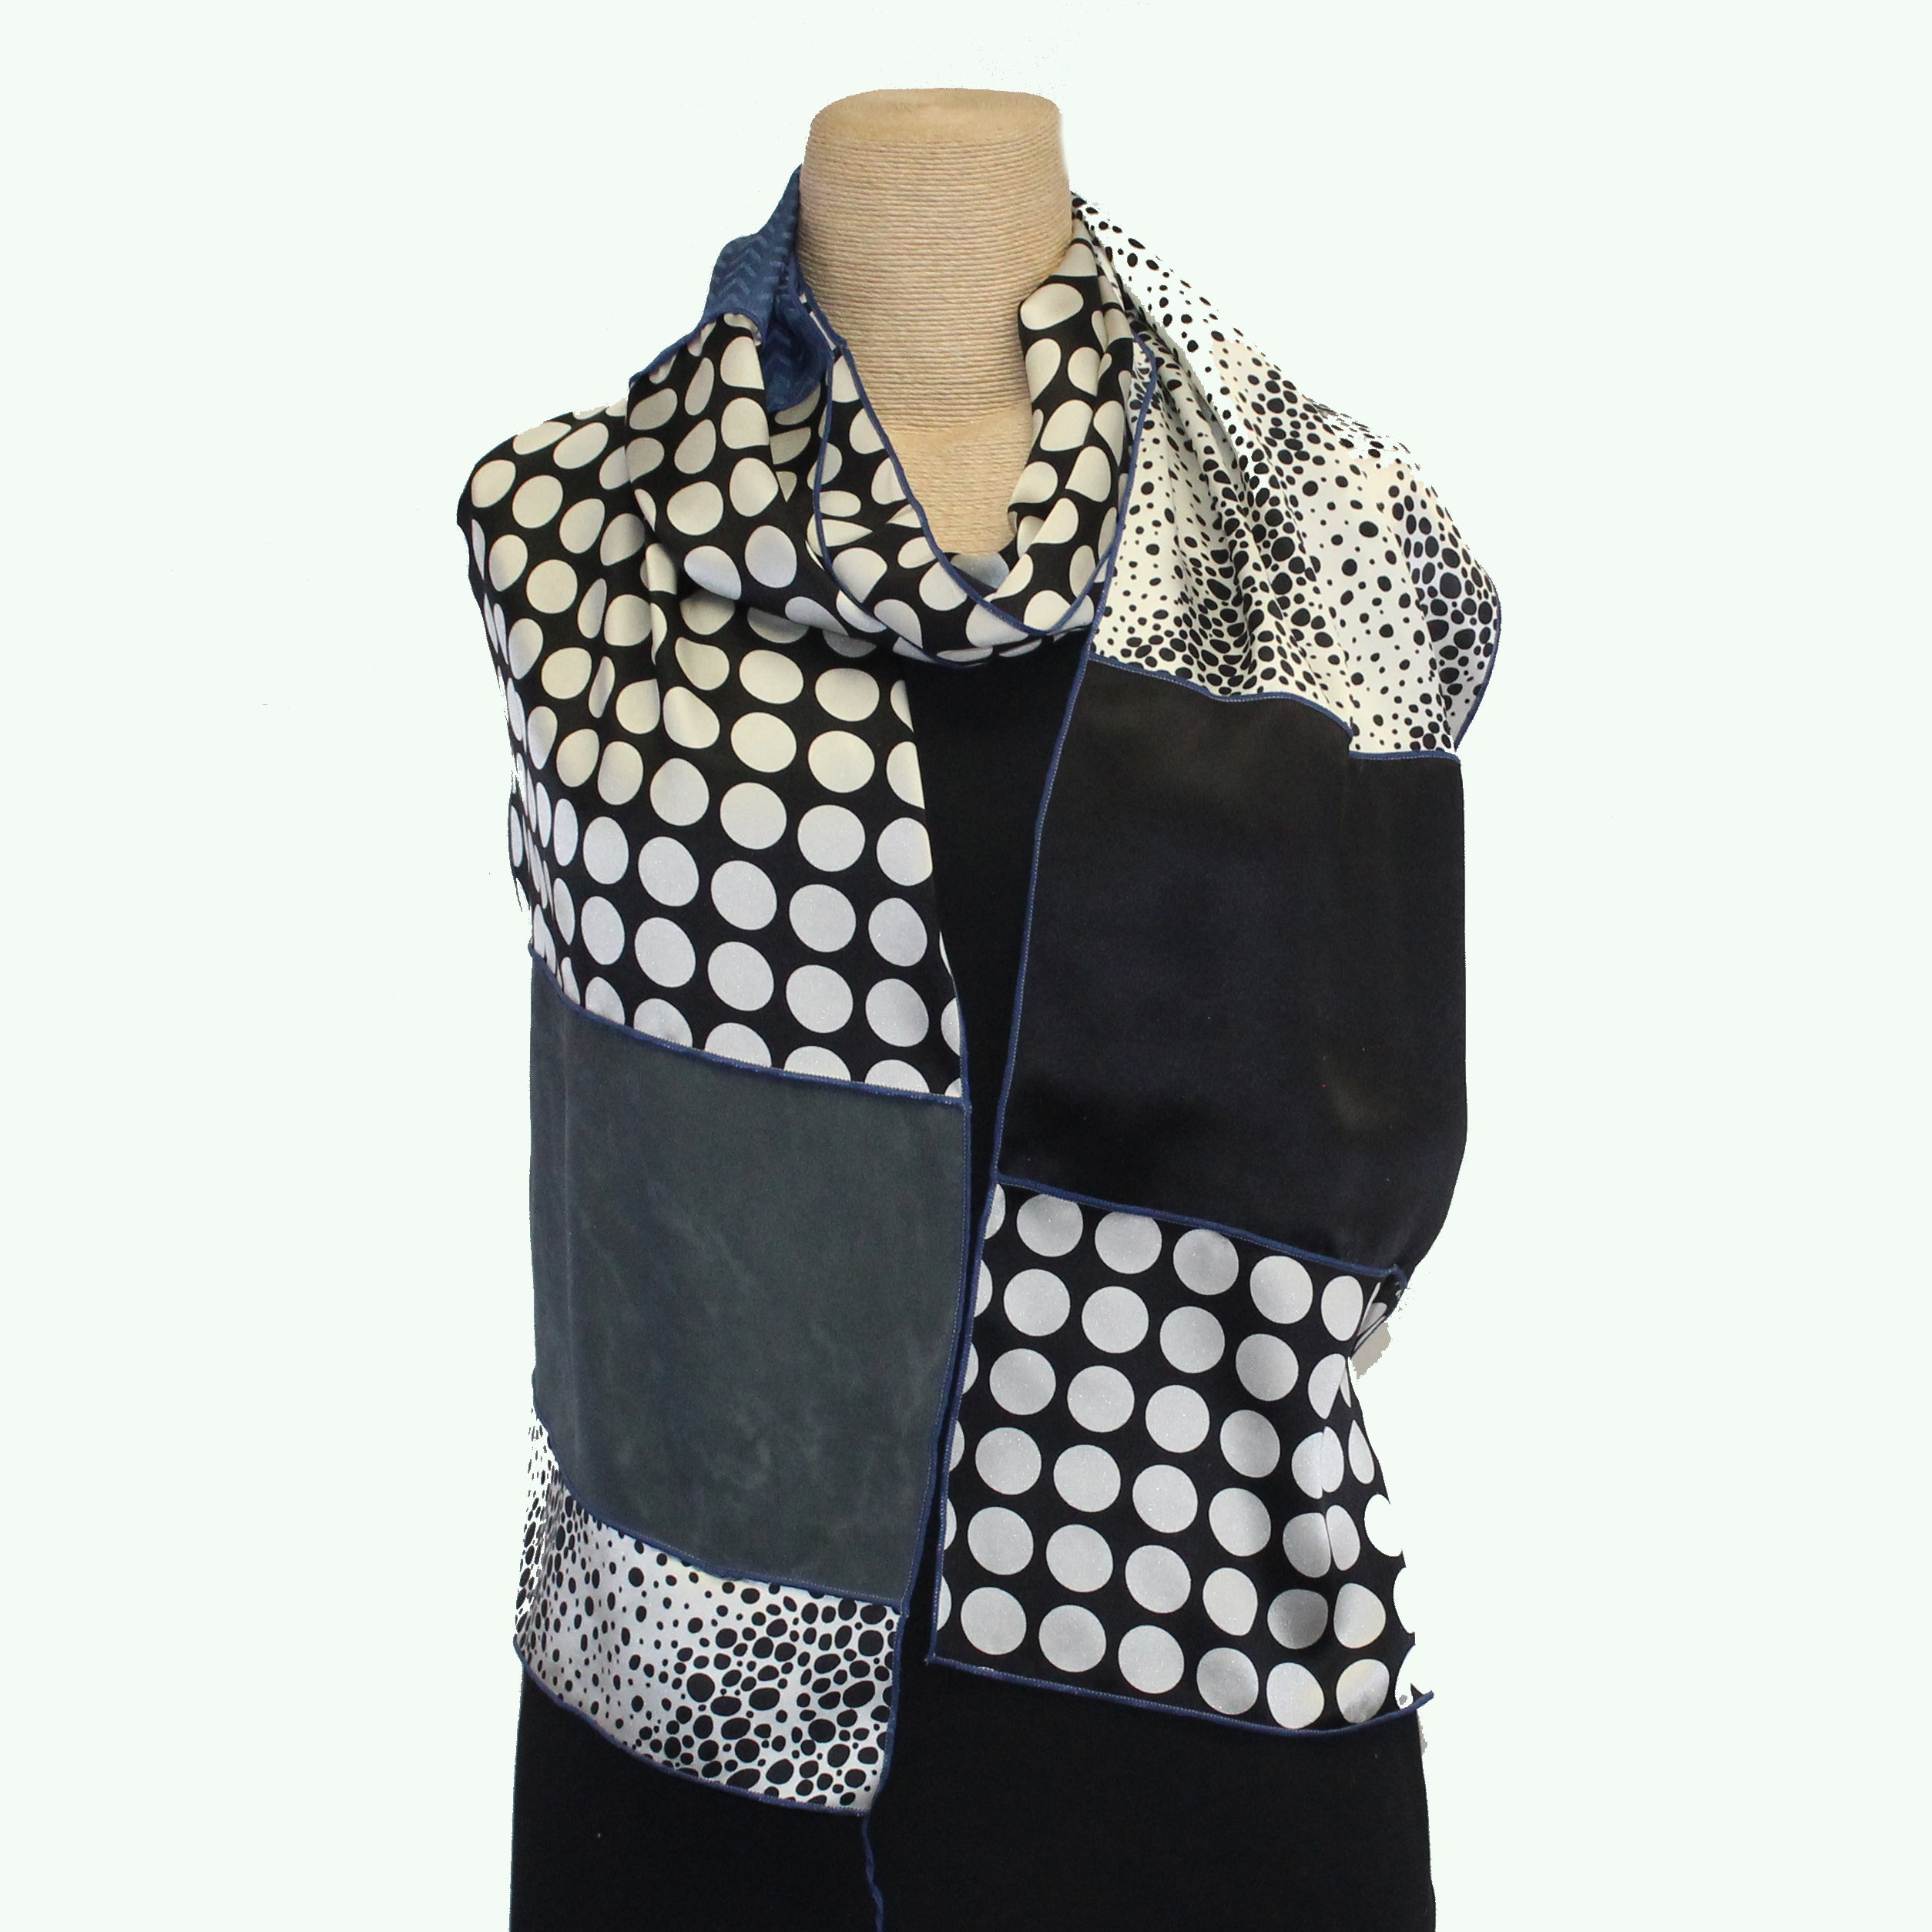 Judith Bird Scarf, SilkSingles, Black & White/Blue/Grey